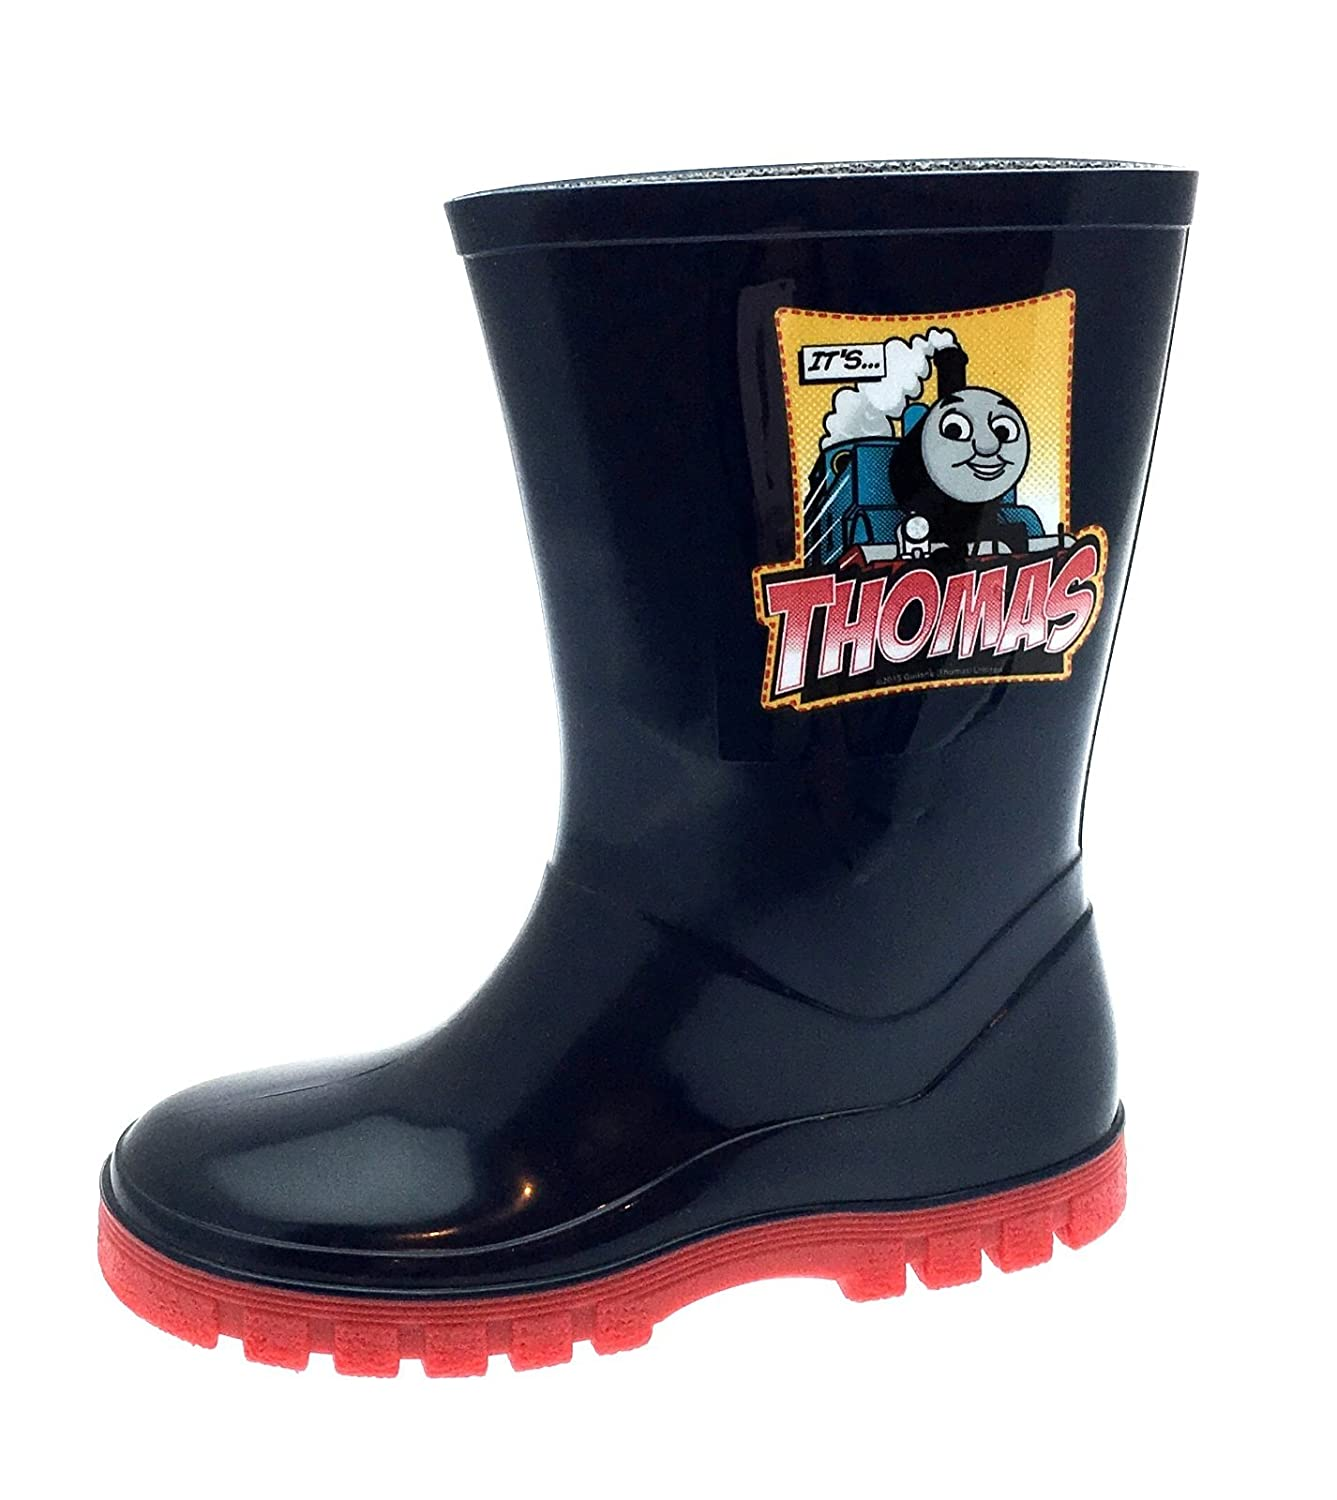 Thomas Le Bleu Marine Wellies Uk 7 3lHMaW